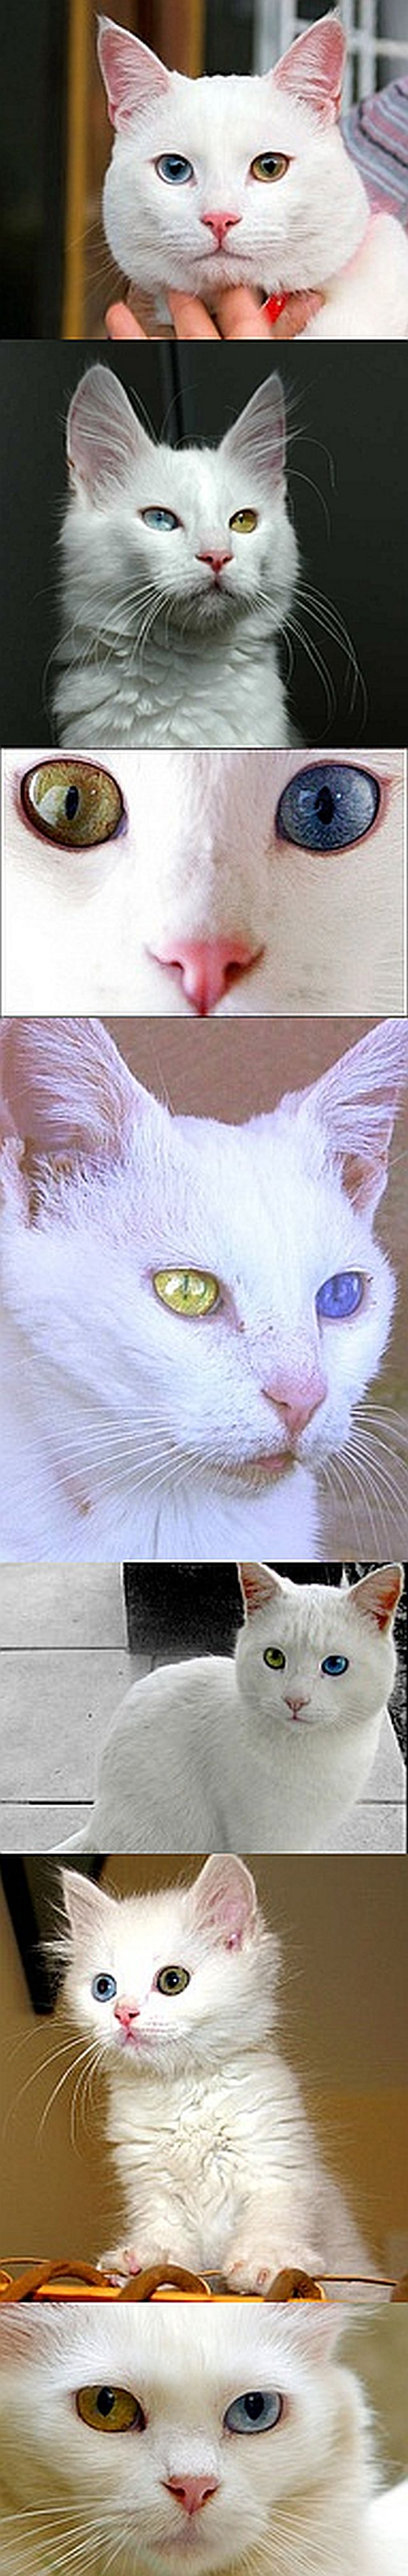 Real - The Van cat(Not to be confused with Turkish Van or Turkish Angora.) is a distinctive landrace of domestic cat found mainly in the Lake Van region of eastern Turkey. It is large, all-white, and frequently odd eyed. The naturally occurring Van cat type is the basis of the Turkish Van breed, internationally selectively bred with a more recently developed ruddy colouring pattern on the white, as standardised and recognised by many cat fancier organizations.